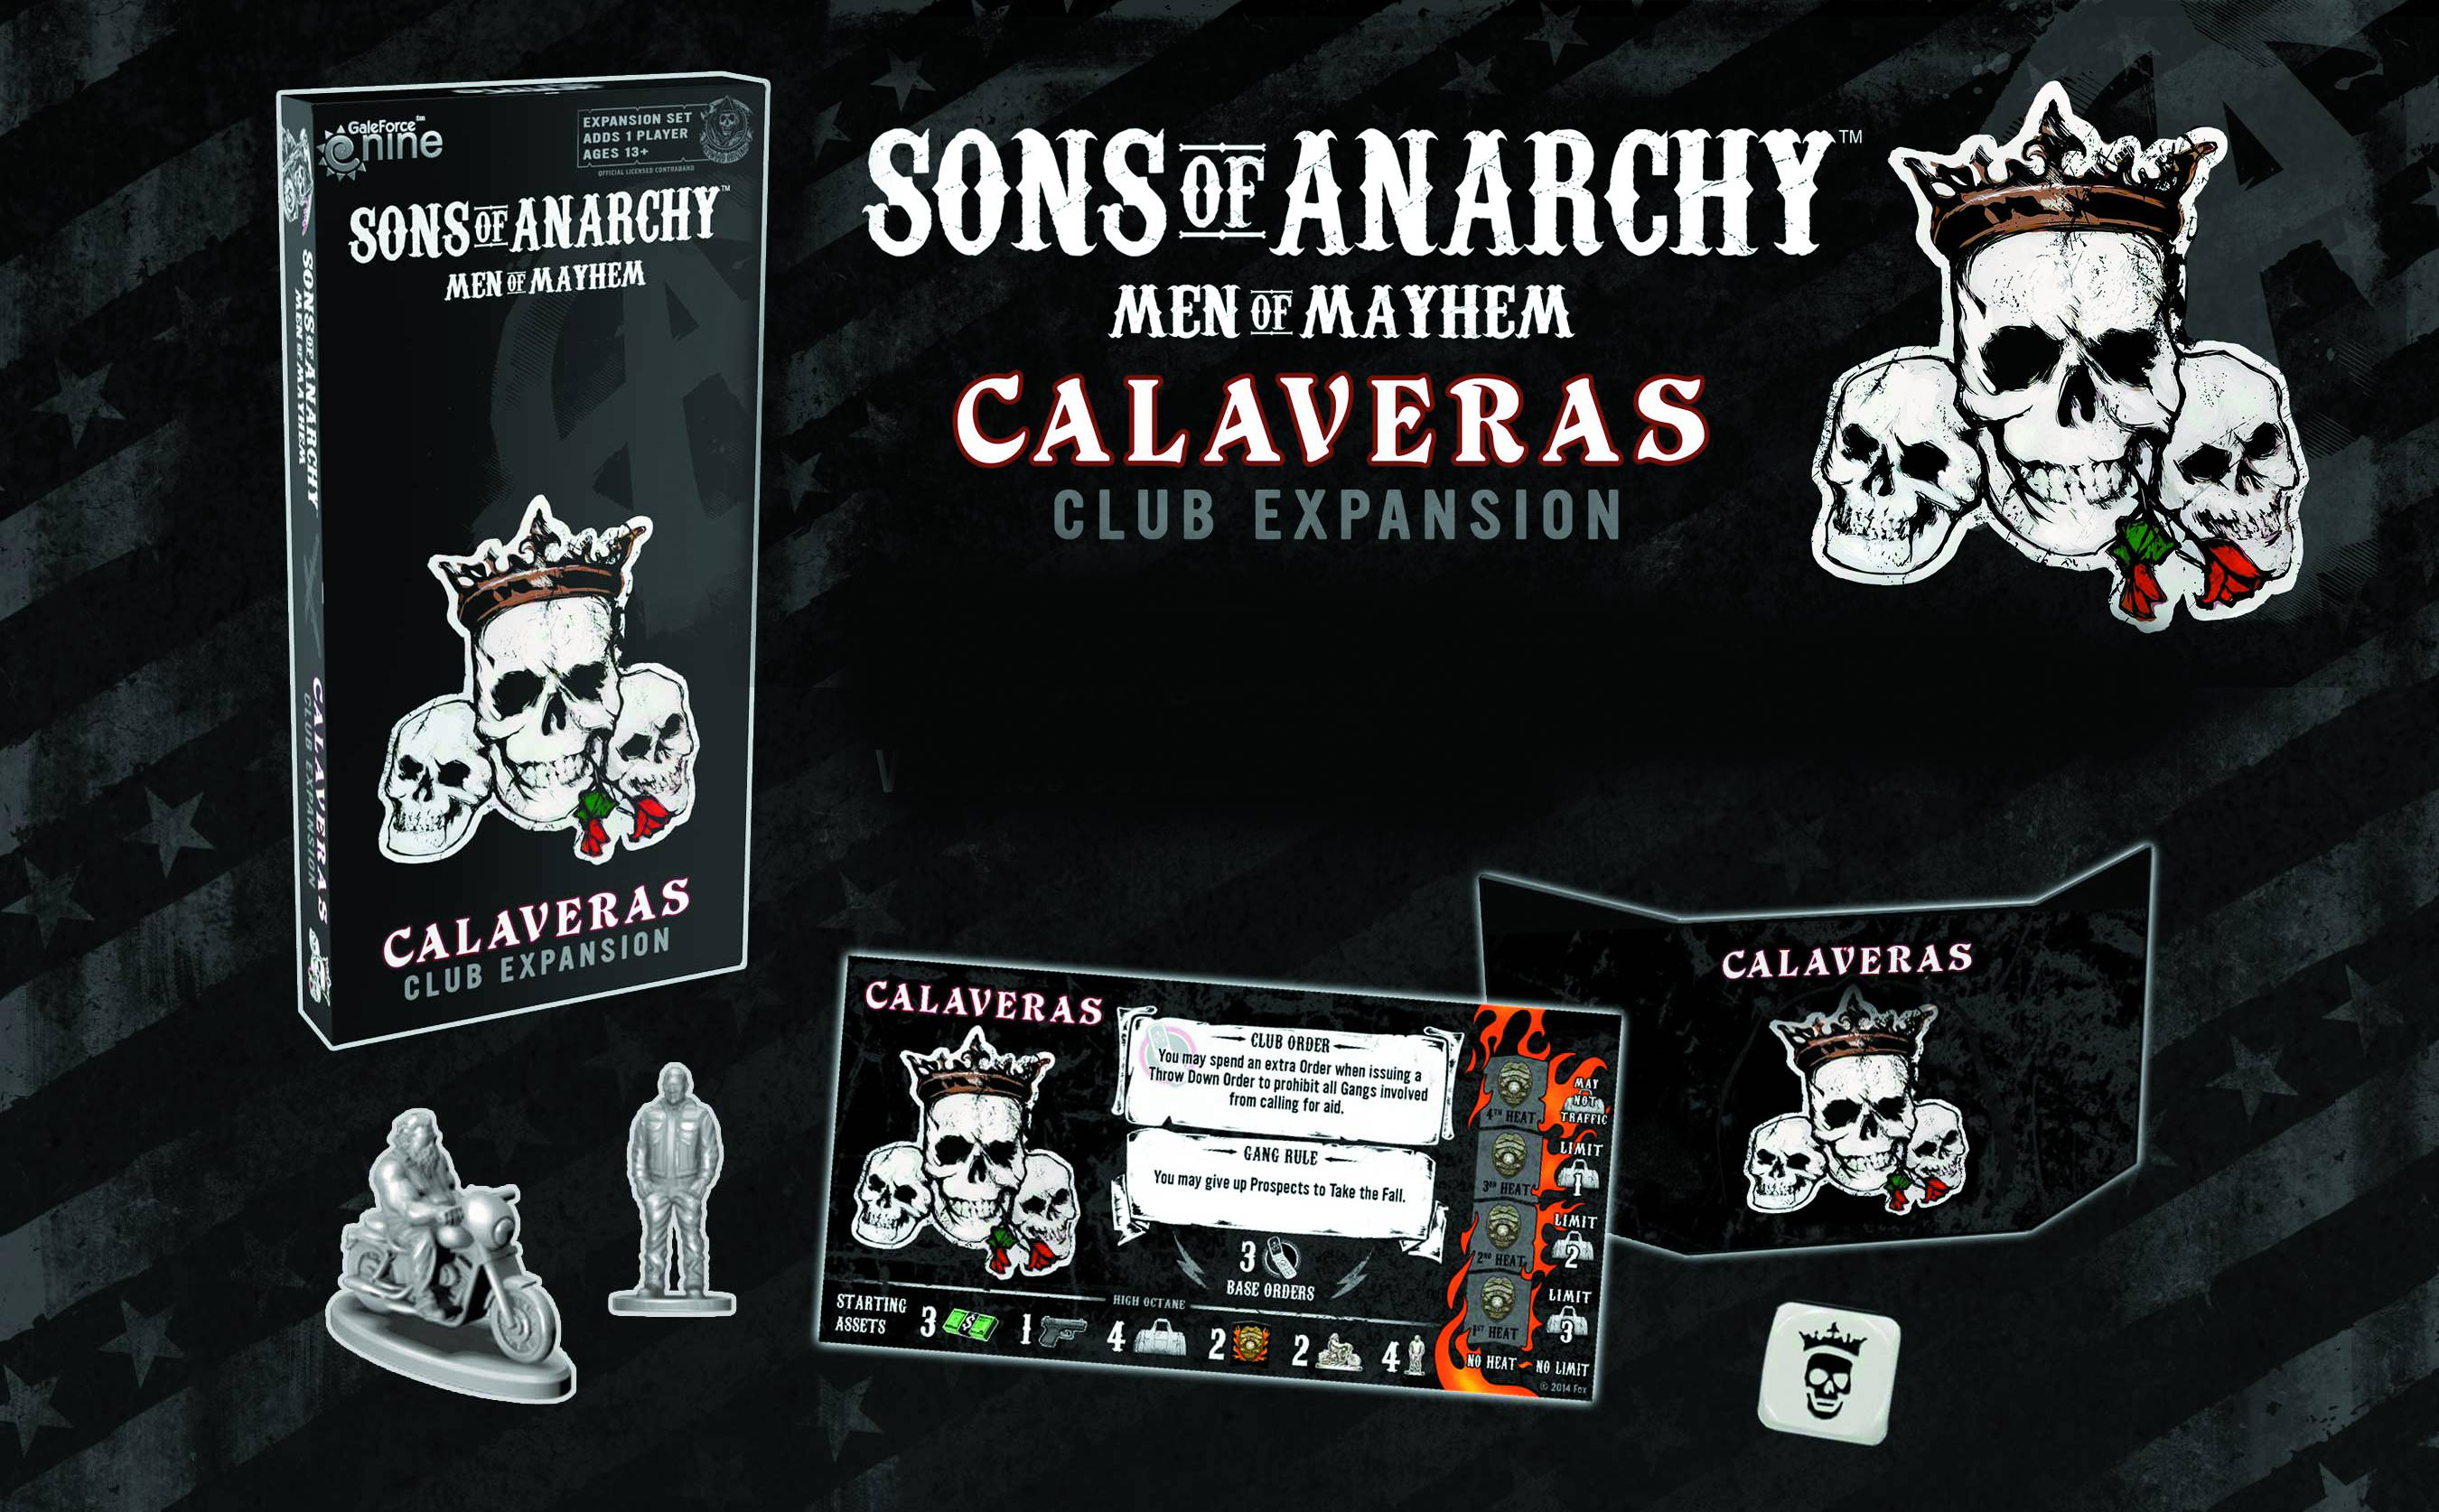 sons of anarchy calaberas club